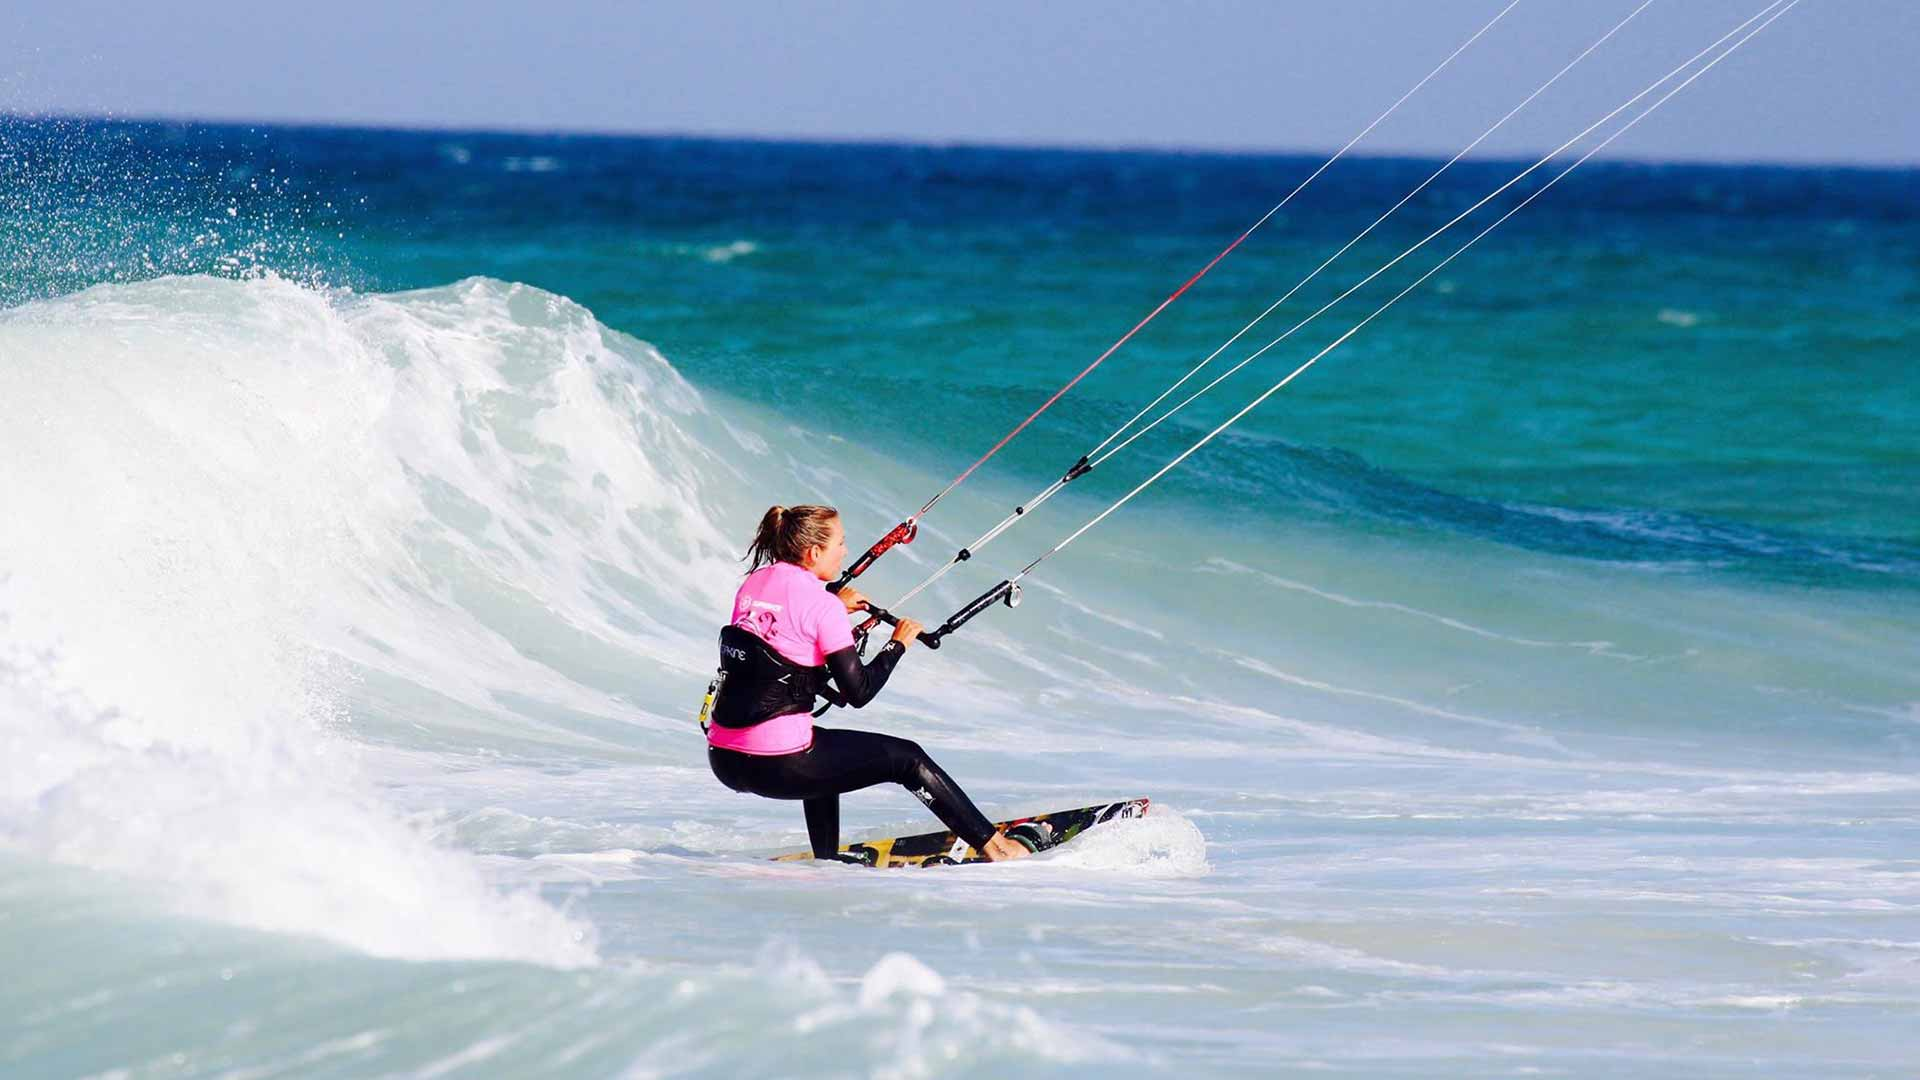 wave kitesurfing course